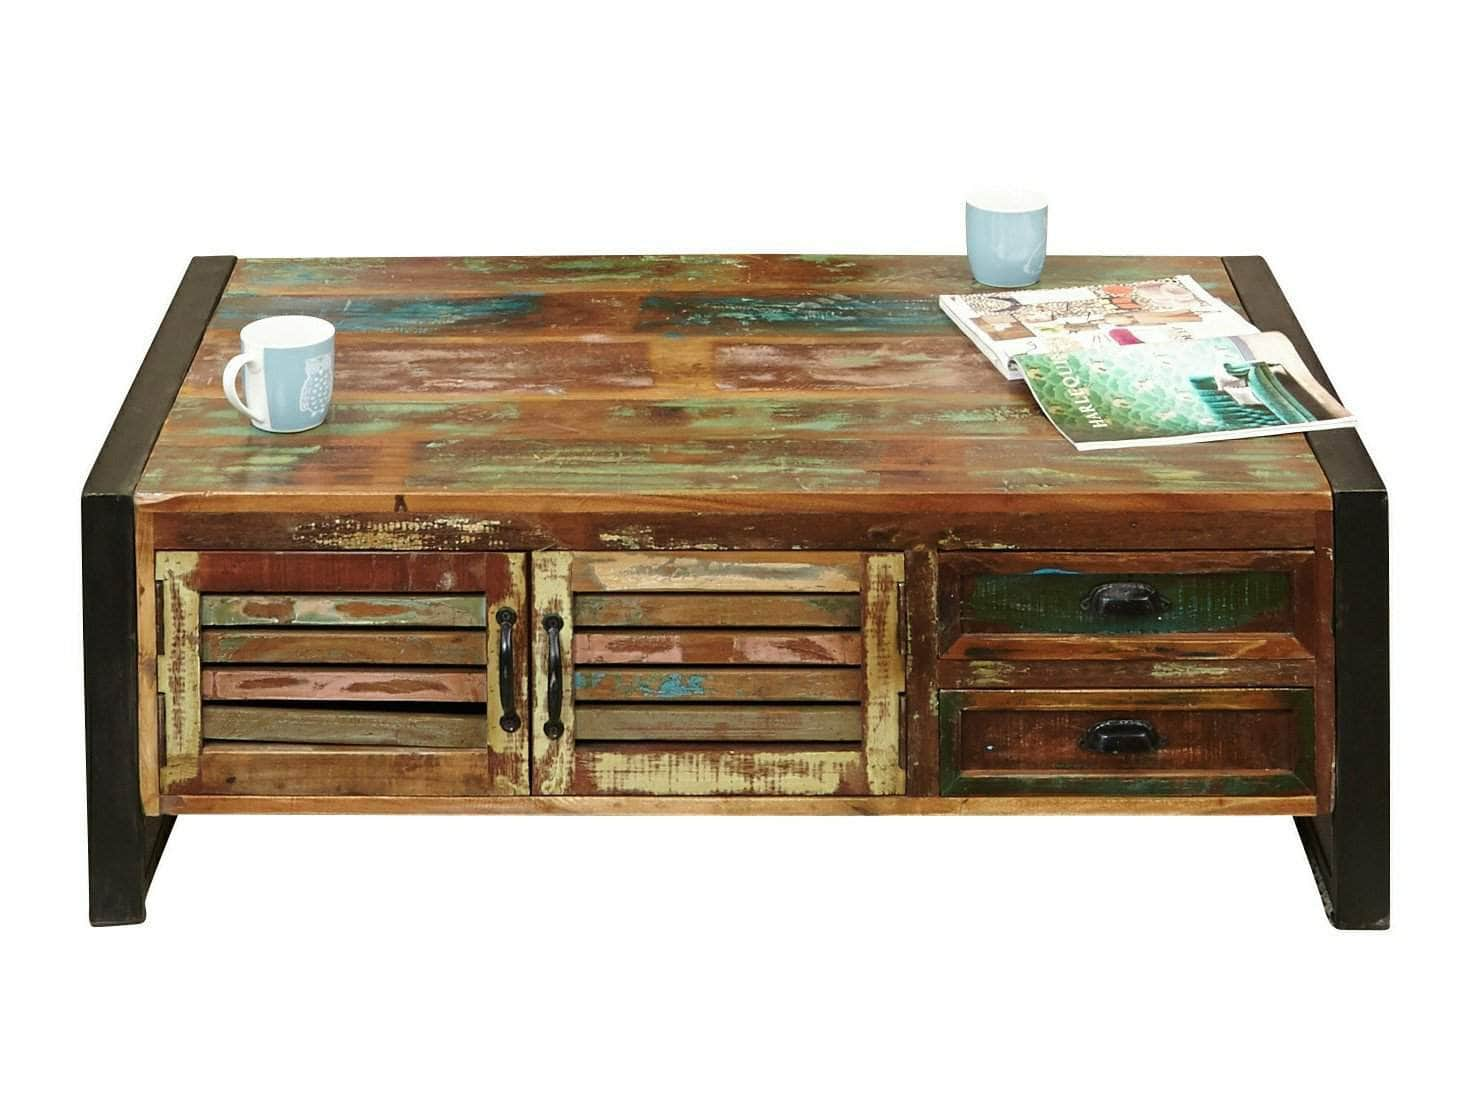 Large reclaimed wood coffee table with two drawers and storage compartment